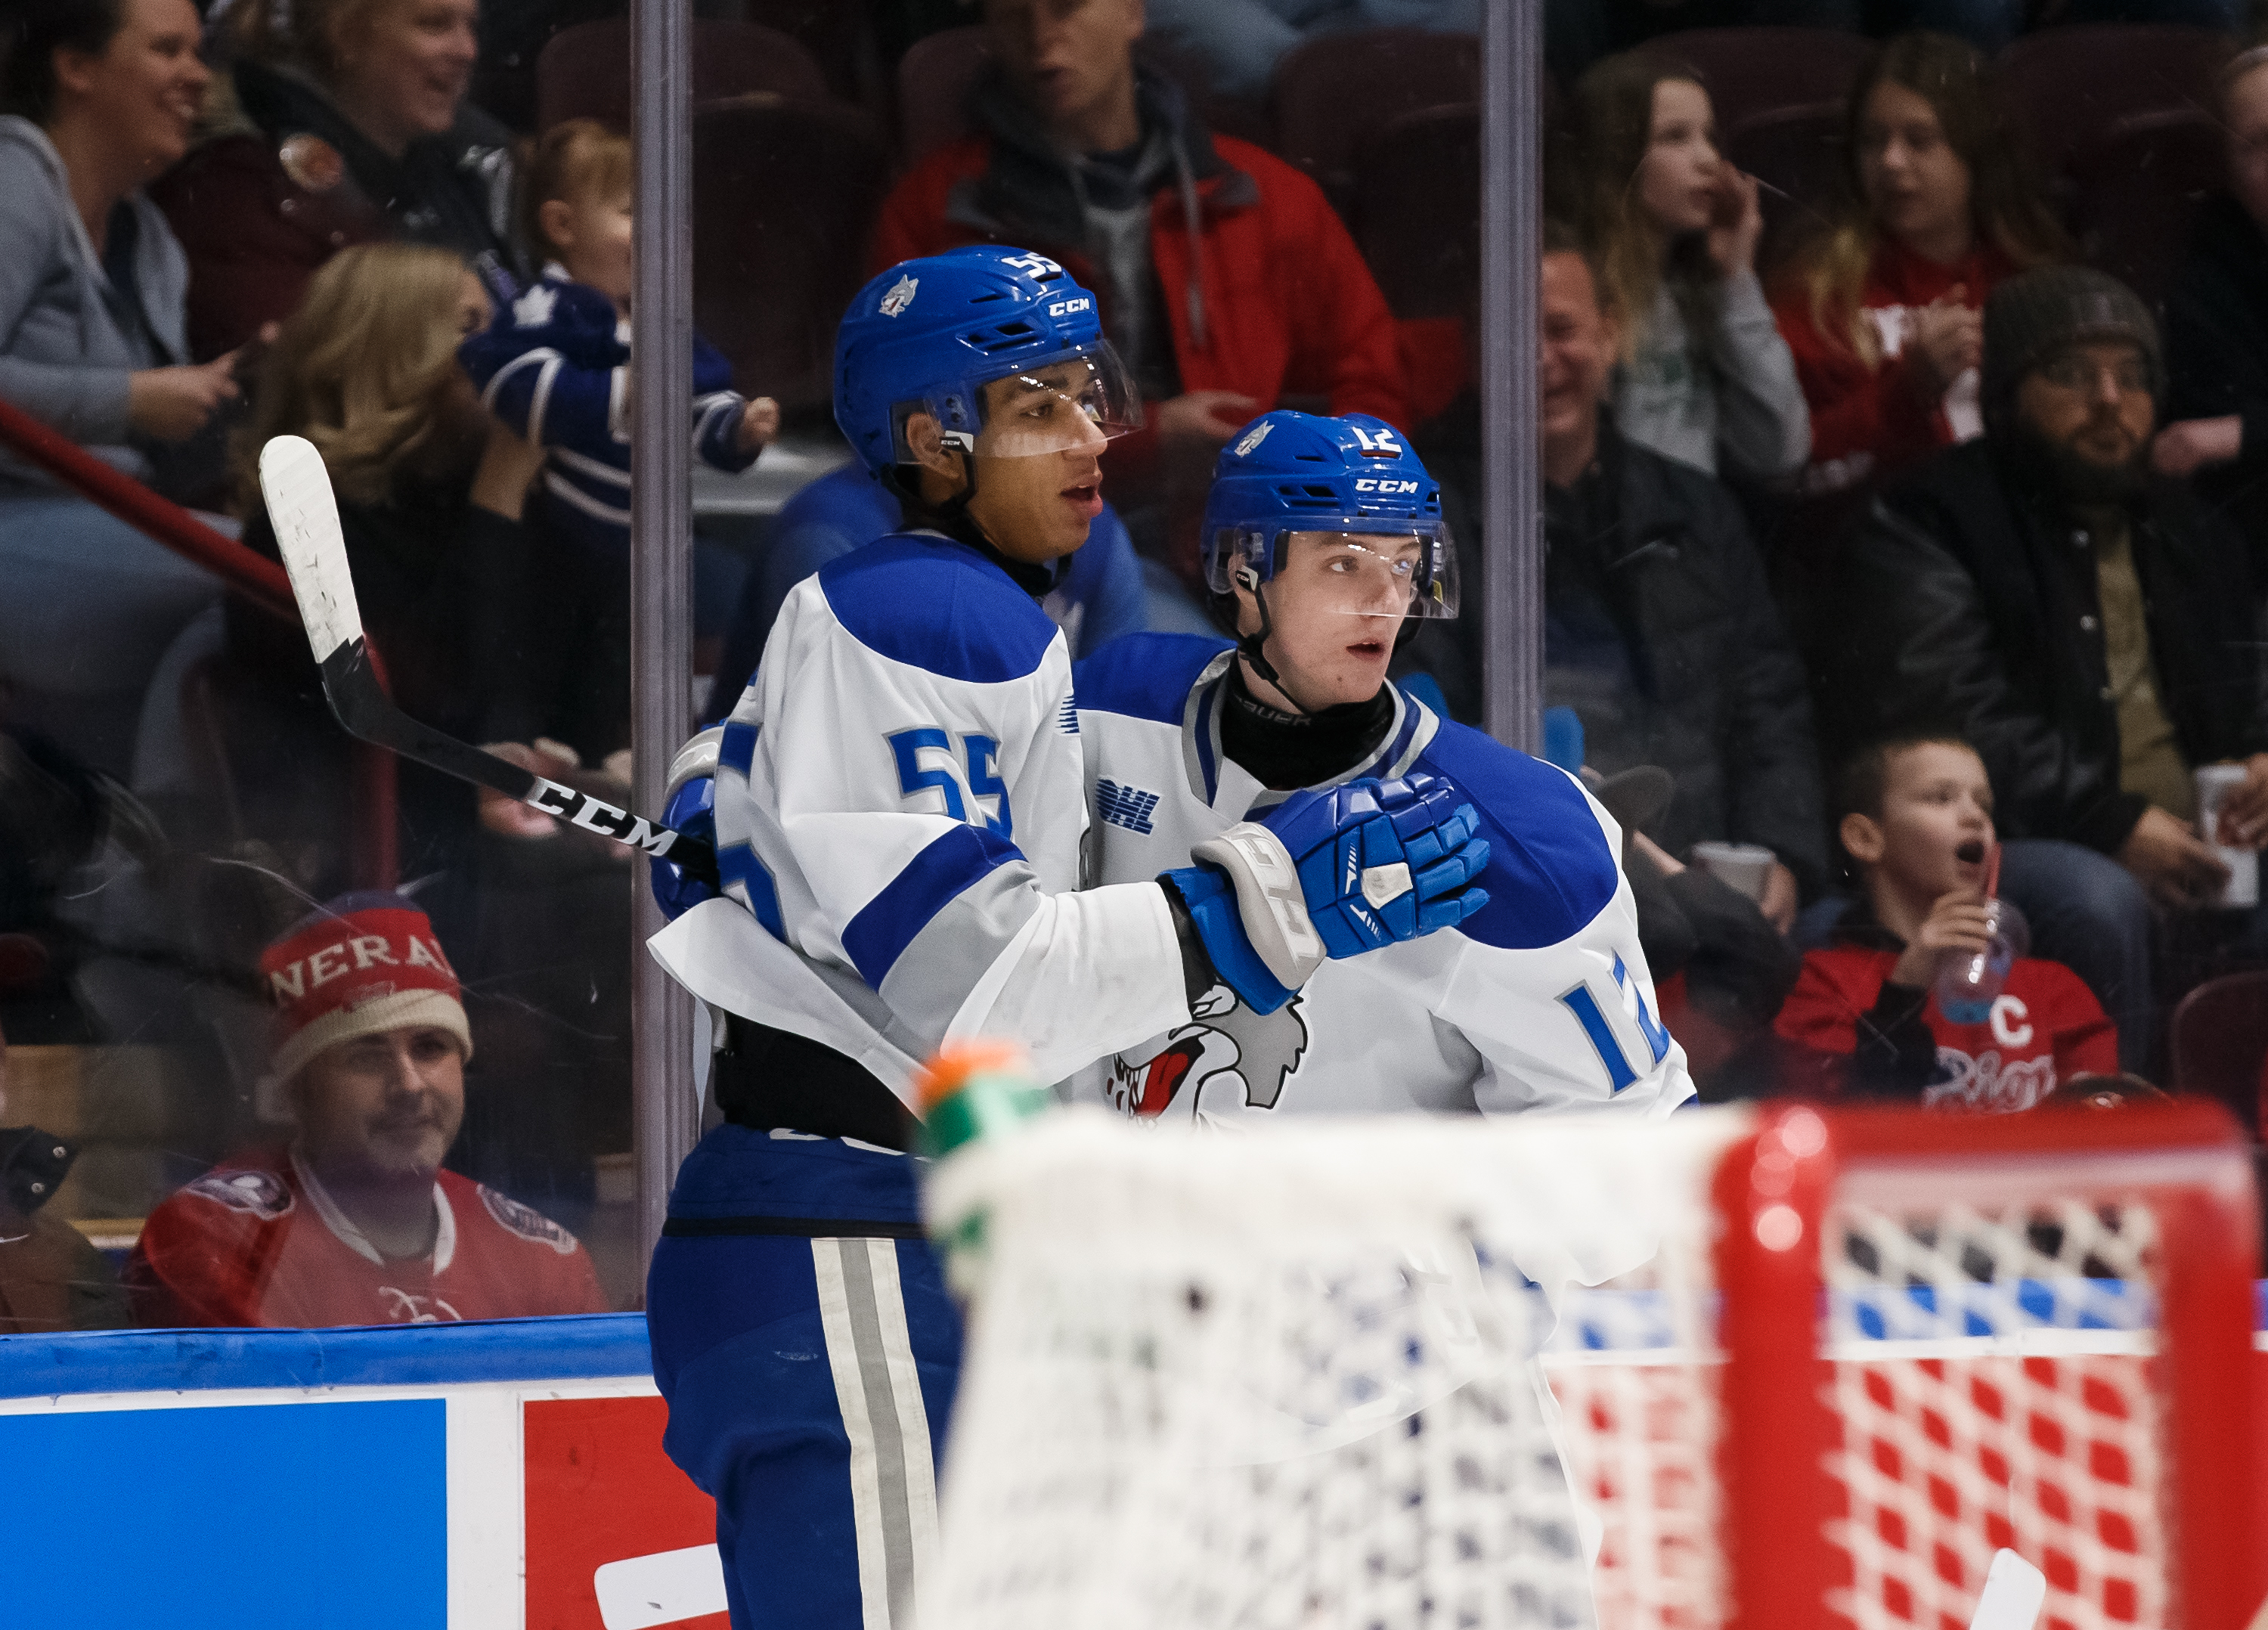 Quinton Byfield #55 of the Sudbury Wolves celebrates with his teammate Matej Pekar #12 after scoring in the first period during an OHL game against the Oshawa Generals at the Tribute Communities Centre on February 7, 2020 in Oshawa, Ontario, Canada.